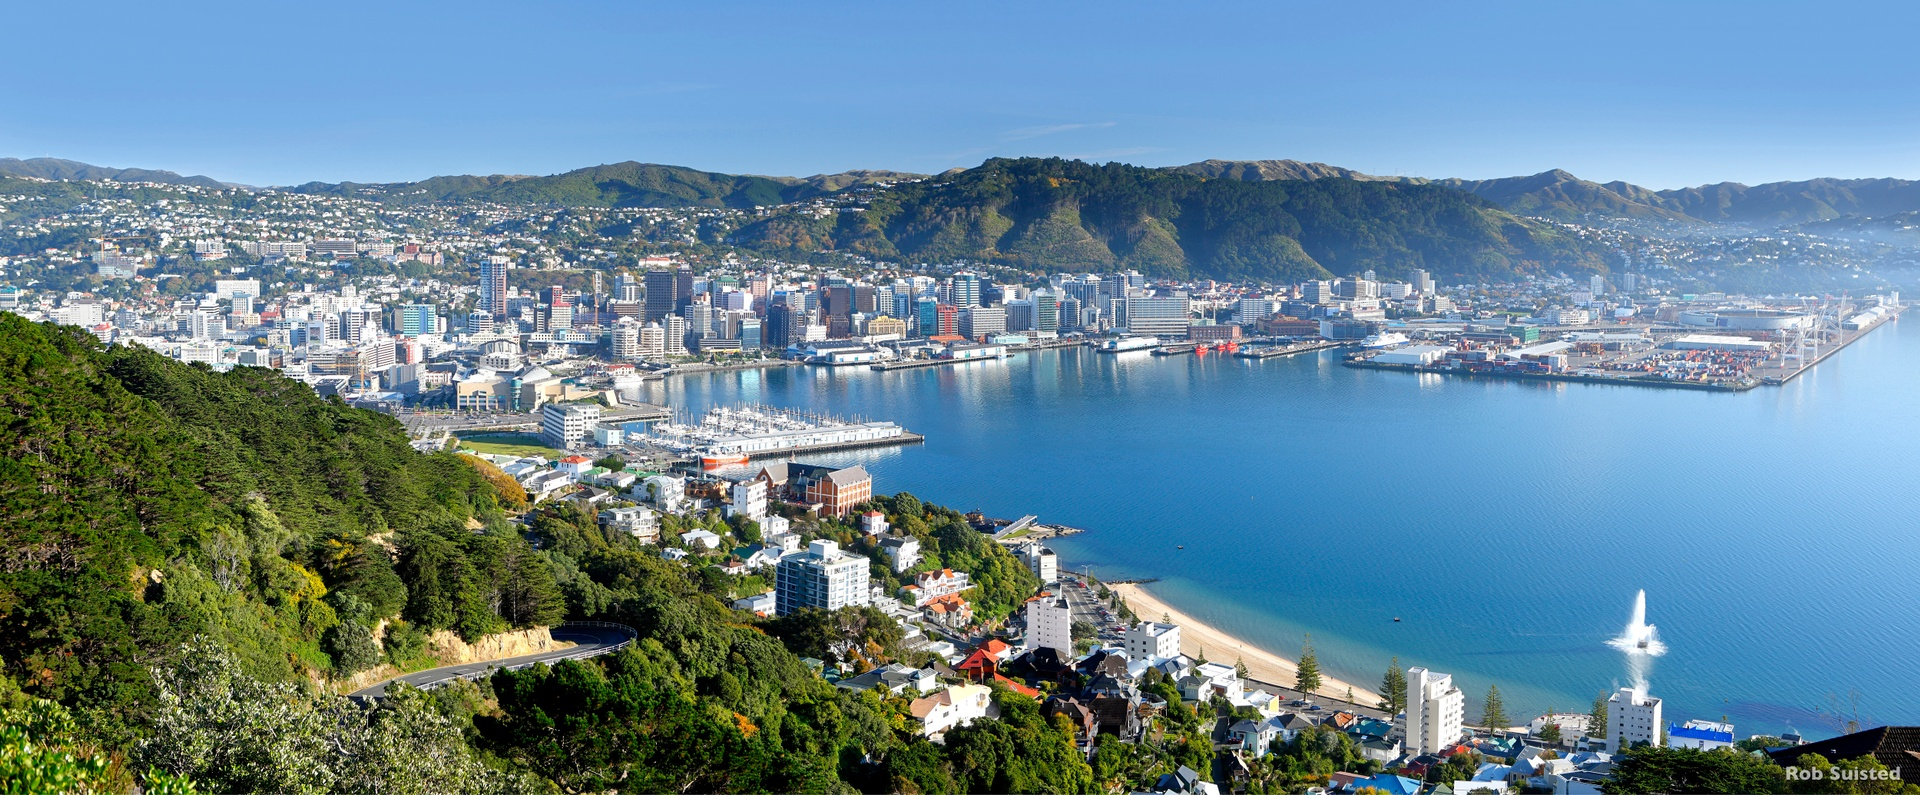 Wellington City (image by Rob Suisted, care of Wellington Tourism).